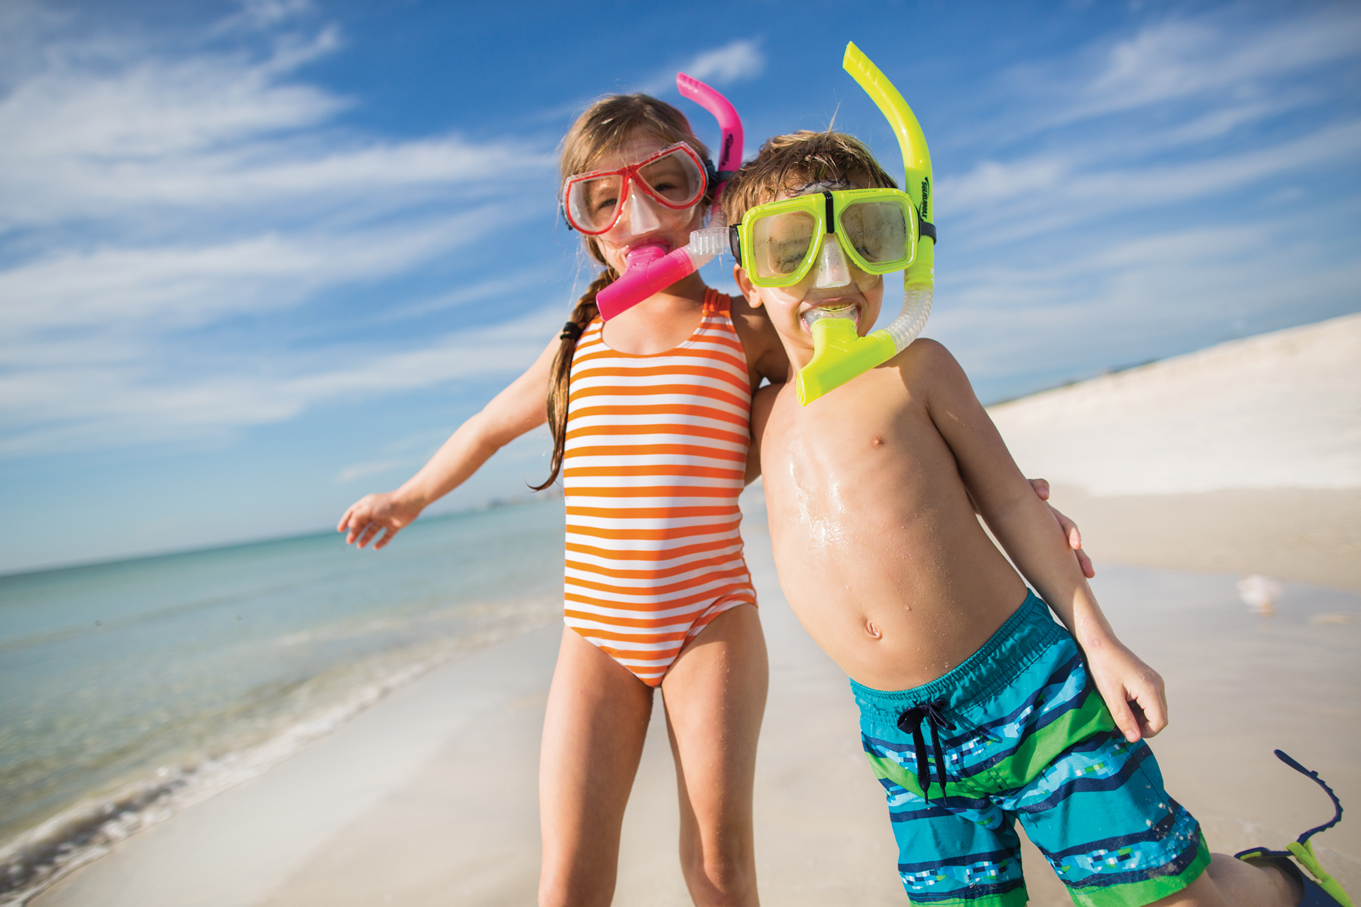 Panama City Beach Is A Fun Destination For The Whole Family!